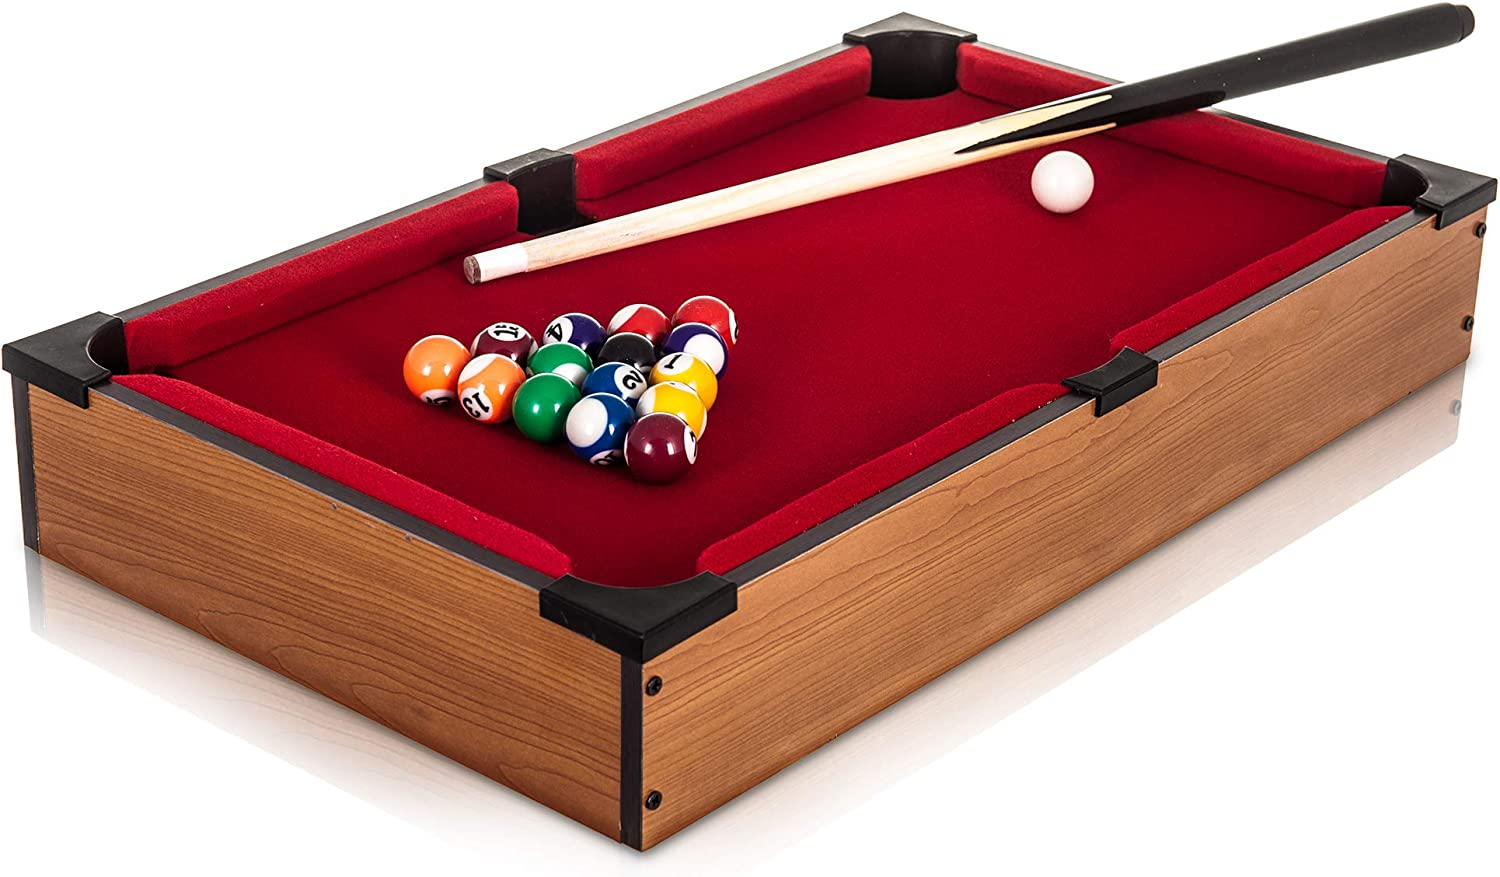 DELUXE MINI TABLE TOP POOL SET CHILDRENS CUE BALLS TOY SNOOKER GAME XMAS GIFT by Pool Table: Amazon.es: Juguetes y juegos